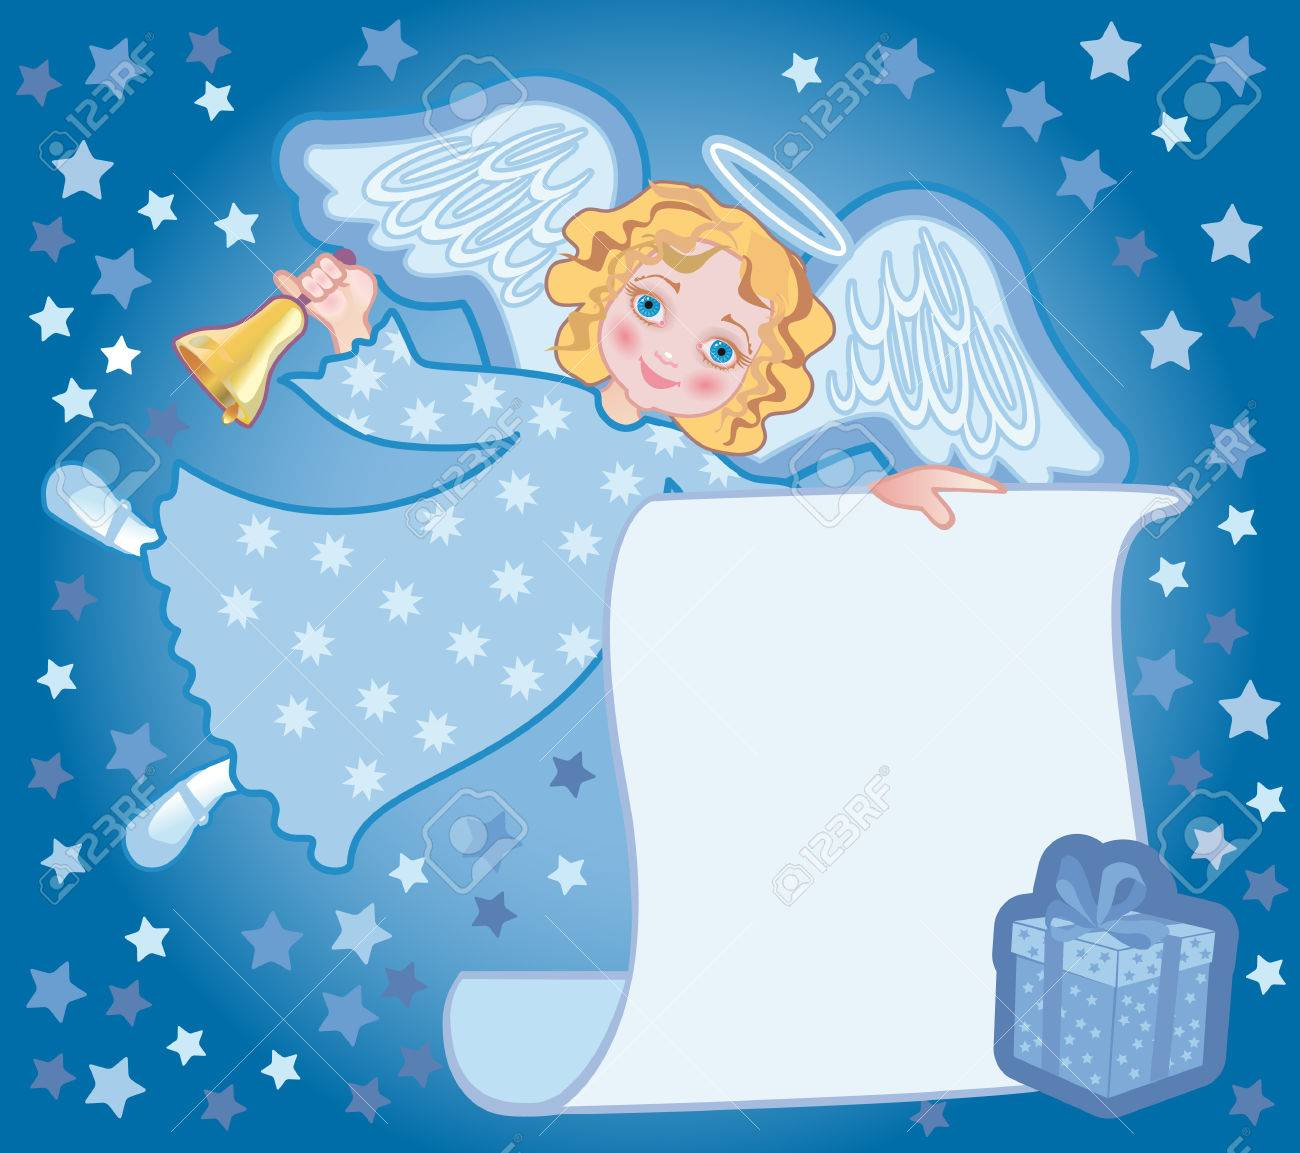 Background for congratulating on Christmas with an angel and gift Stock Vector - 8403253